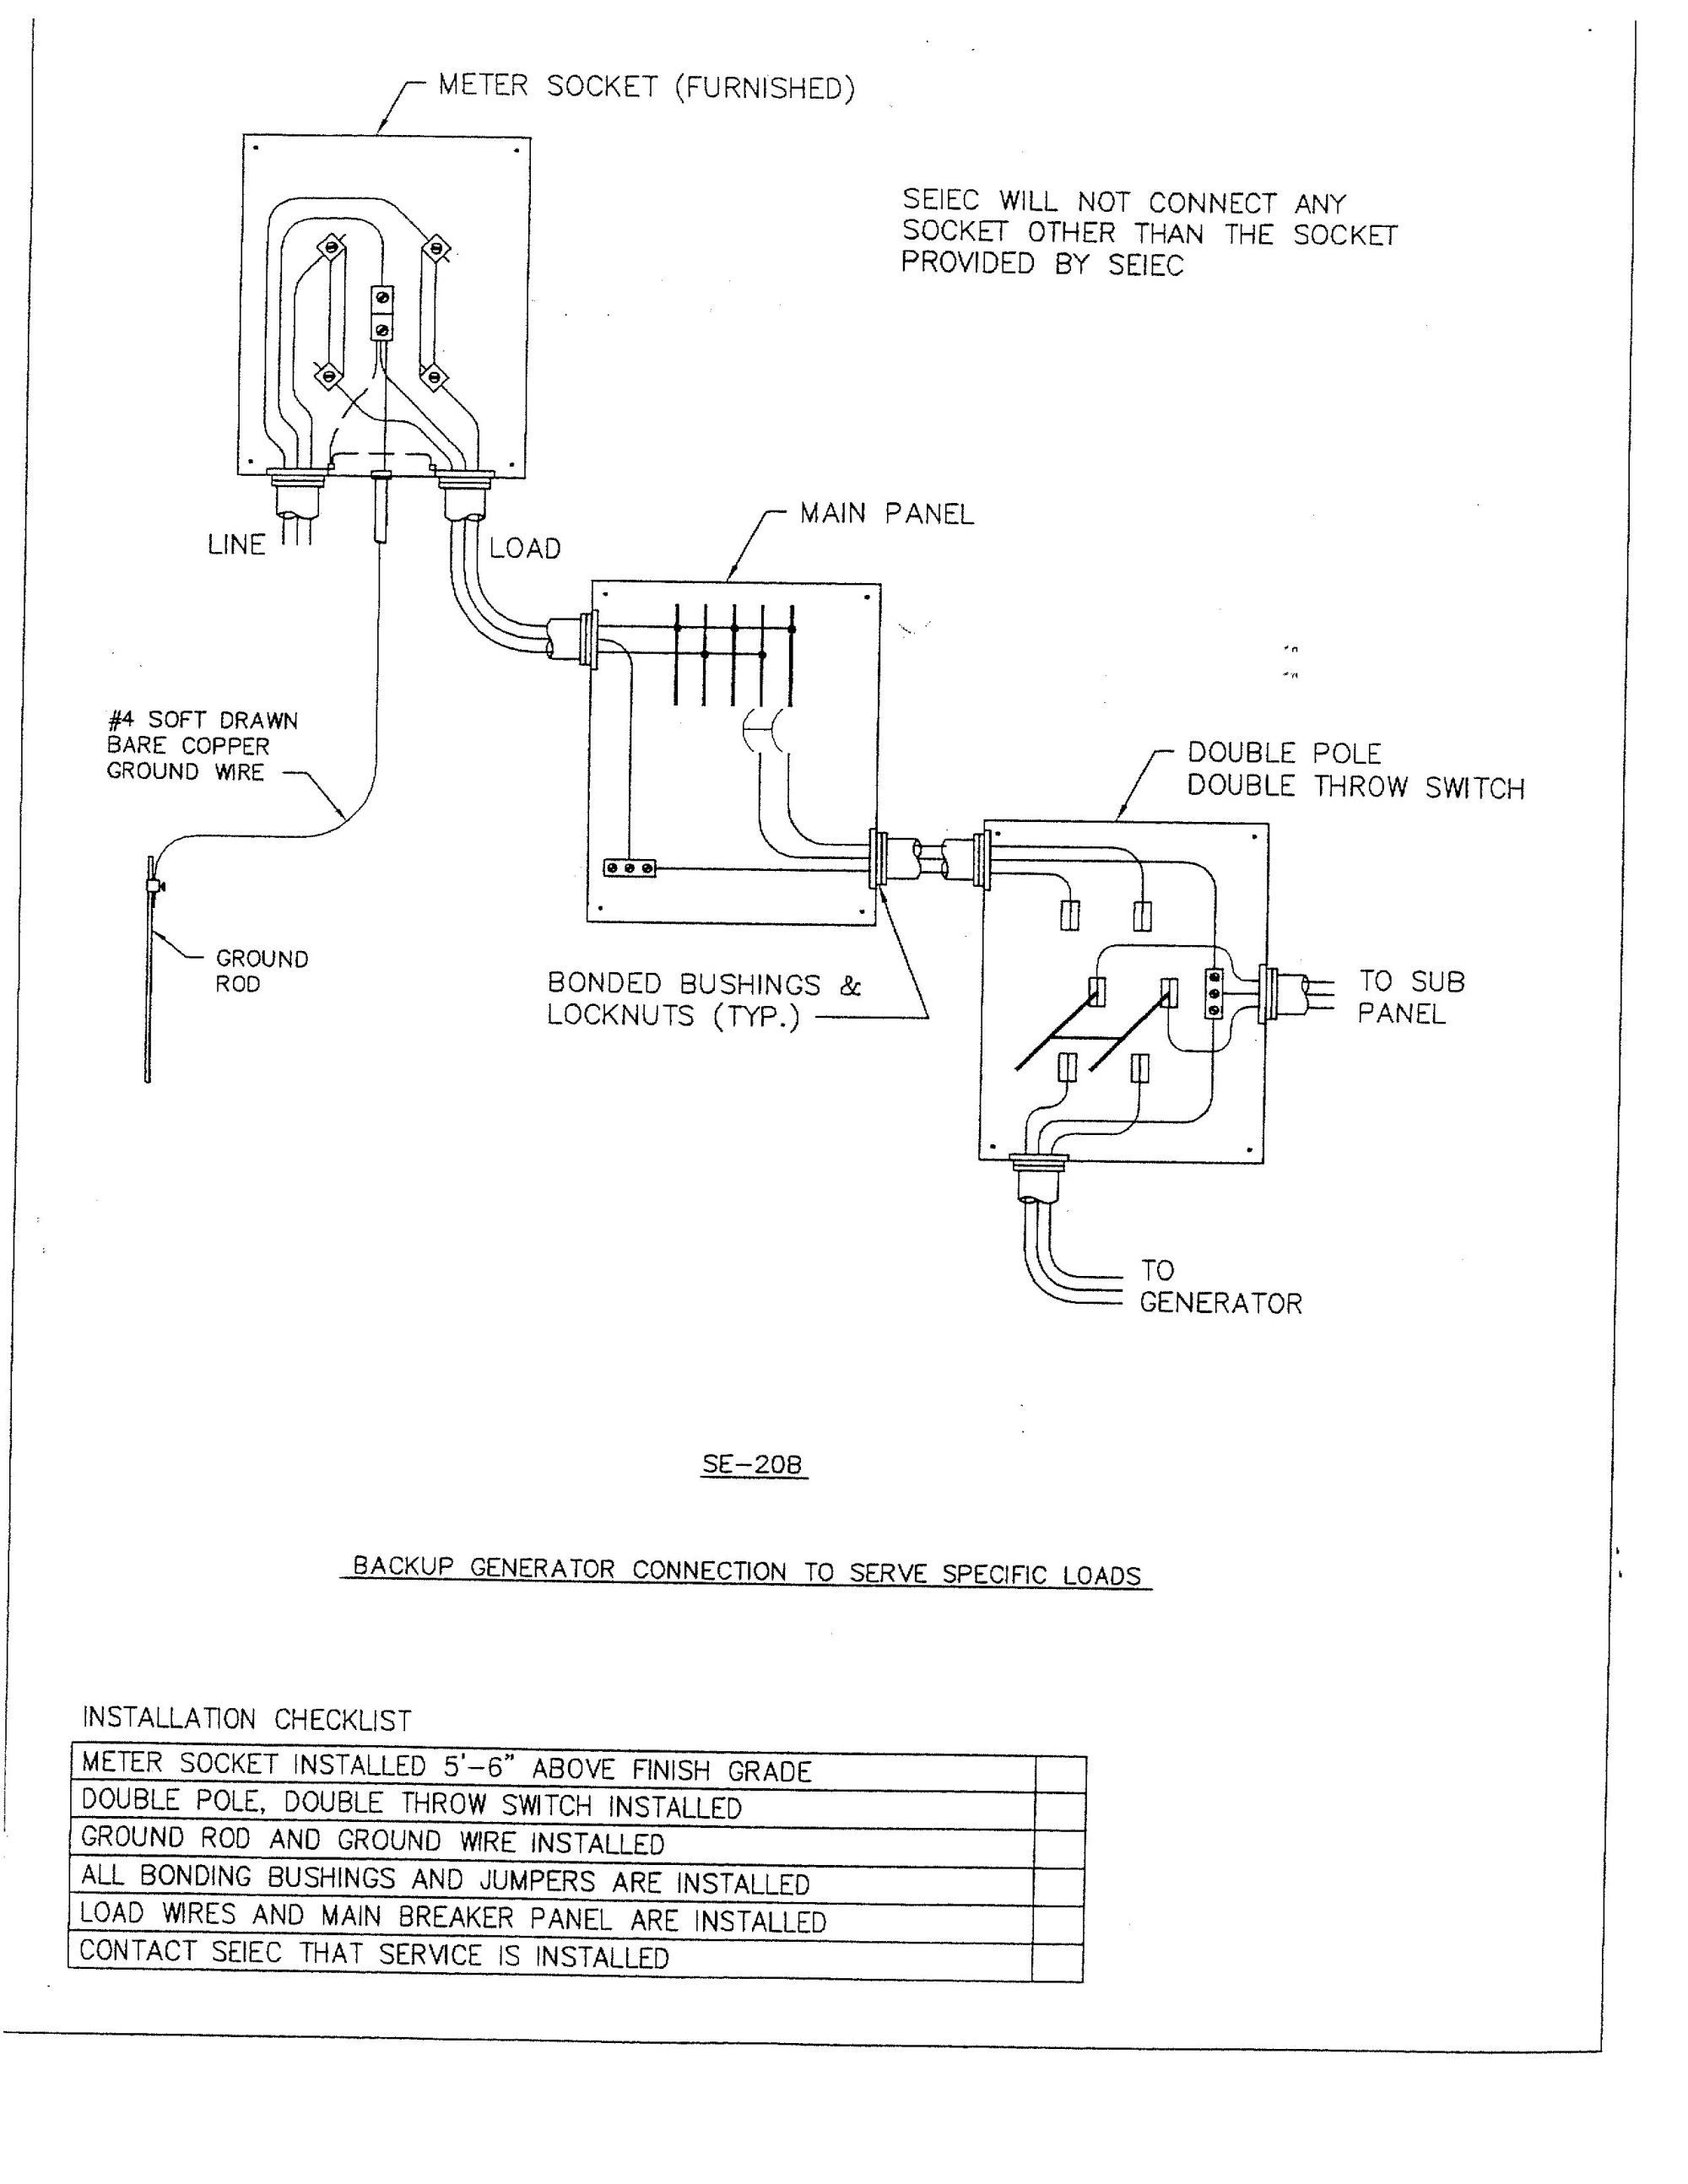 medium resolution of hight resolution of double throw safety switch wiring diagram 41 wiring 4l80e neutral safety switch wiring